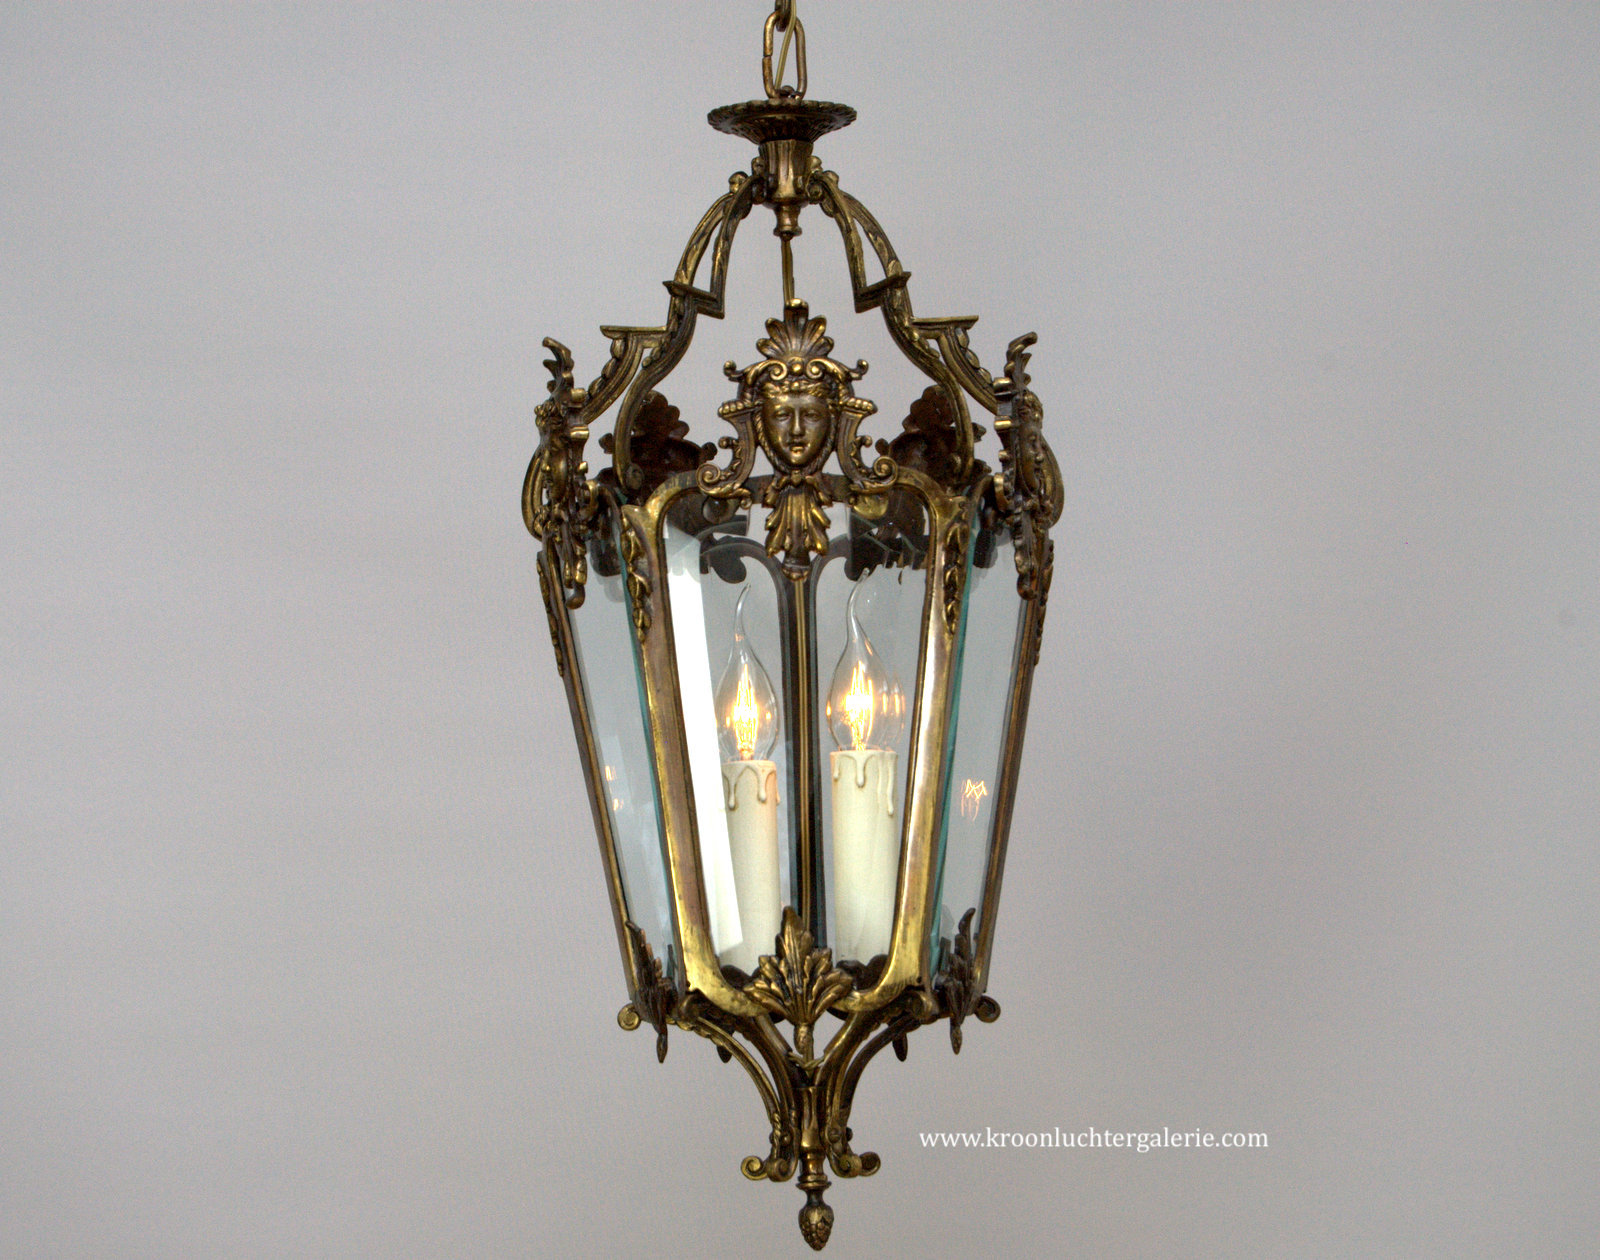 20th century bronze hall lantern